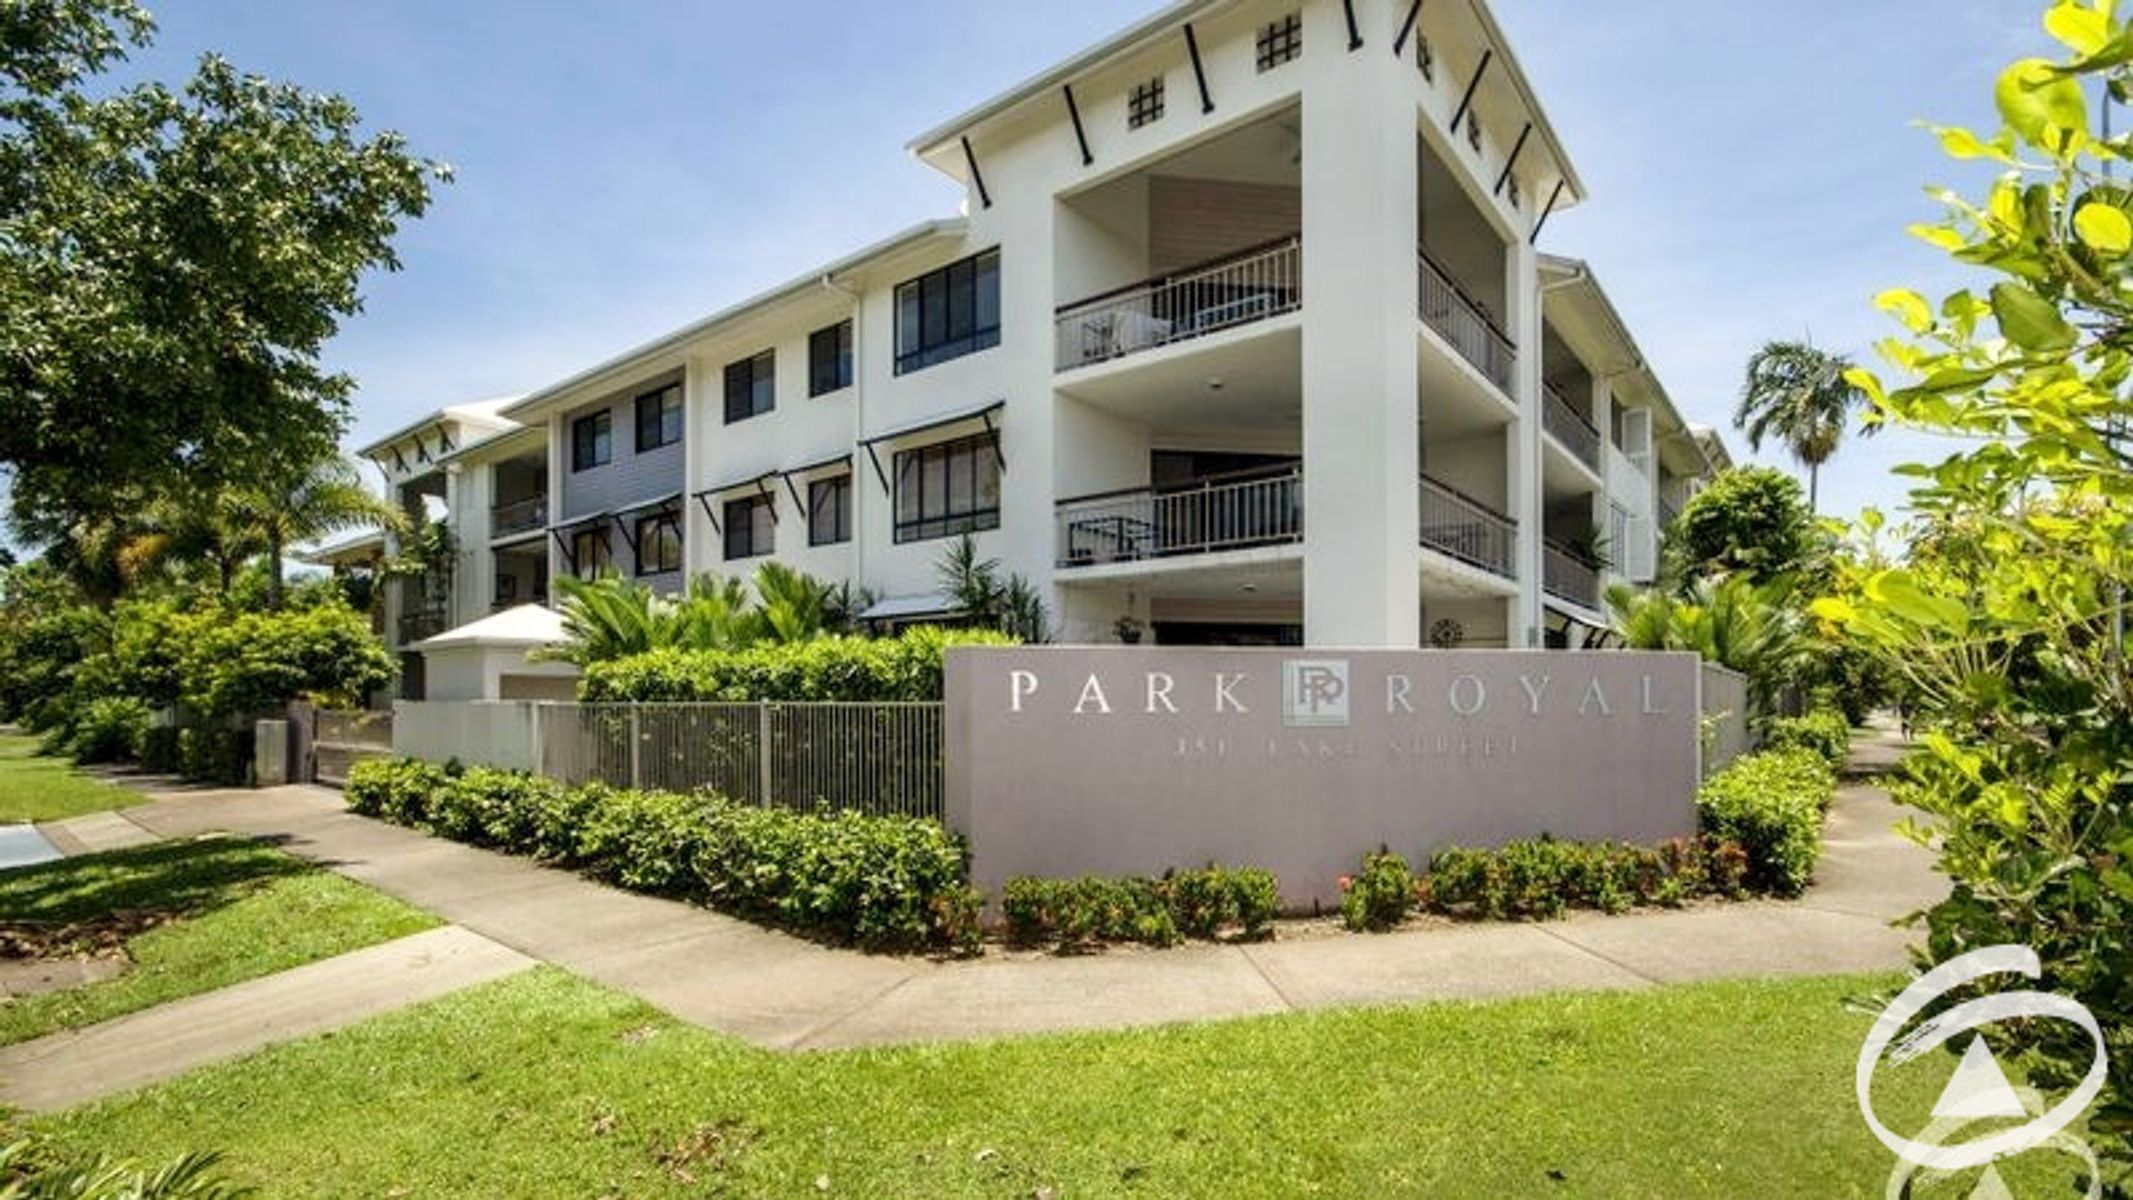 6/351 Lake Street, Cairns North, QLD 4870